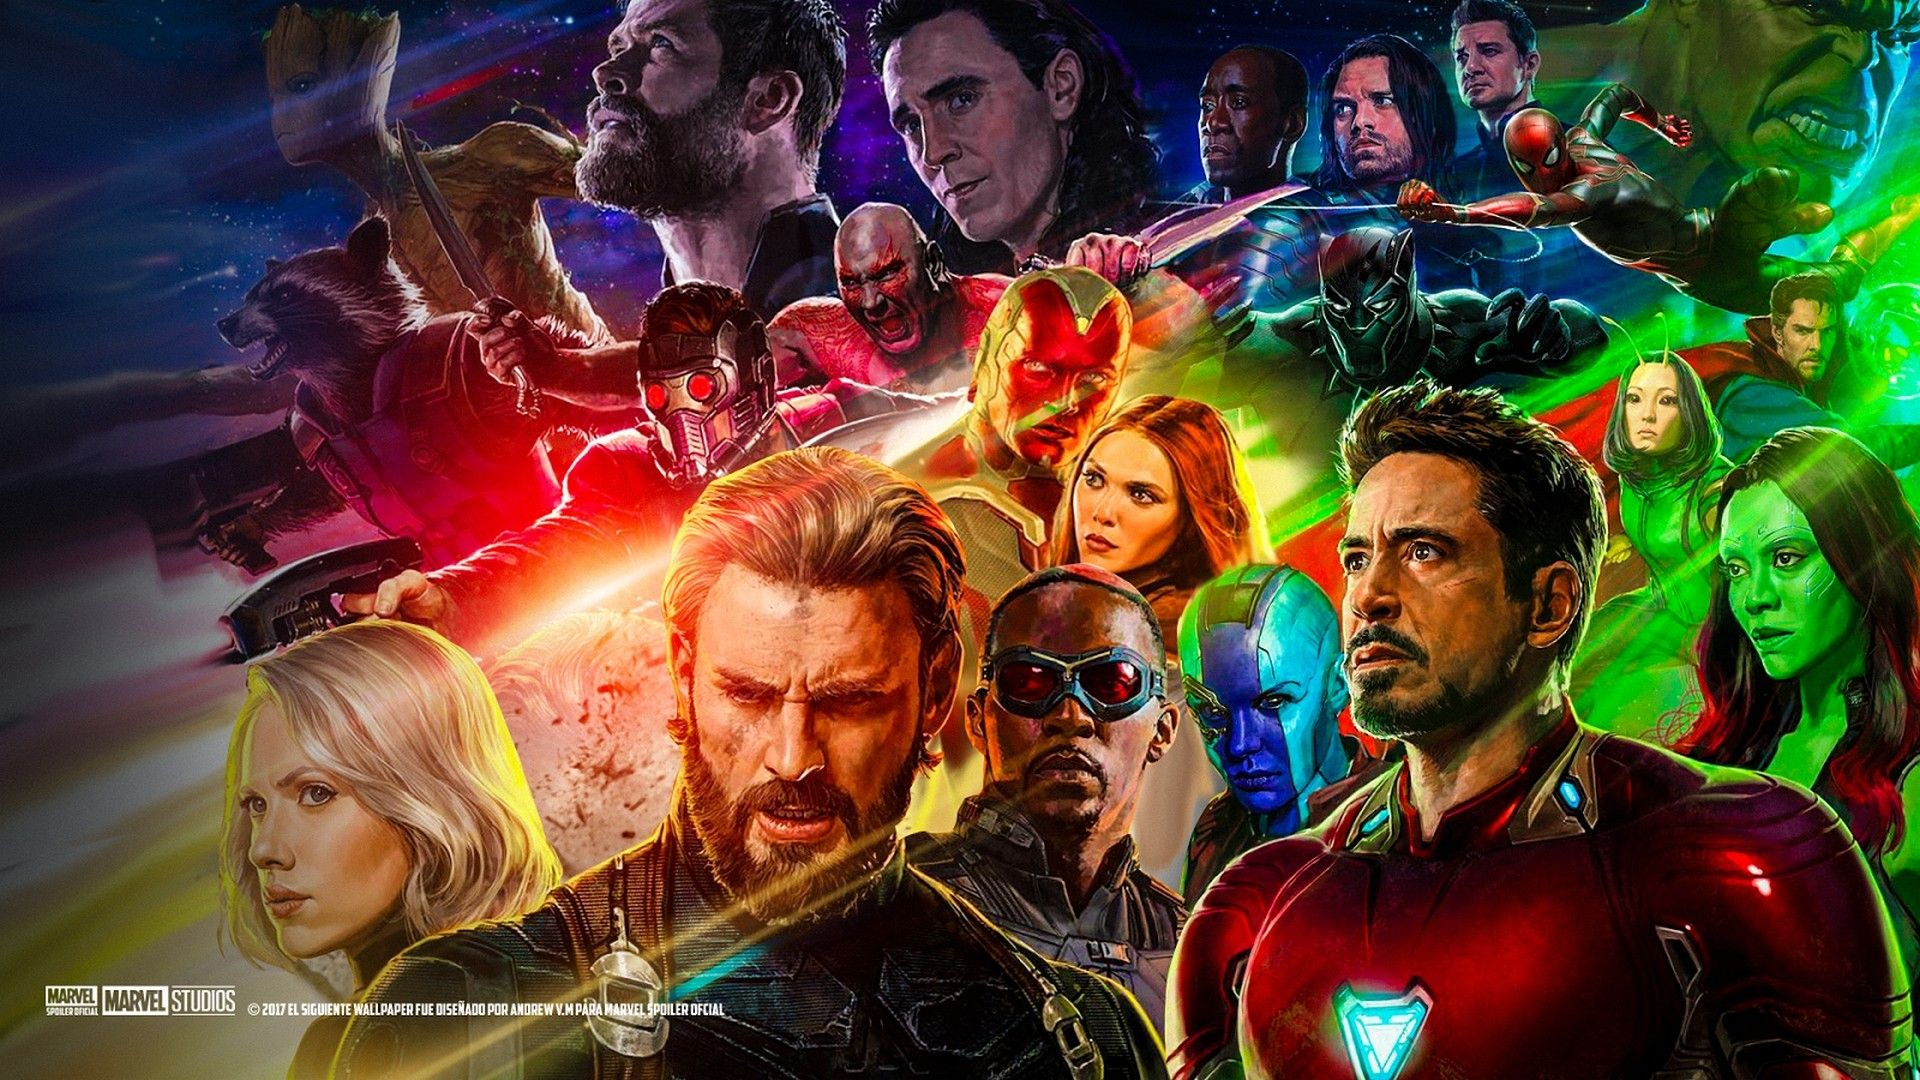 Wallpapers Avengers Infinity War Avengers, Avengers